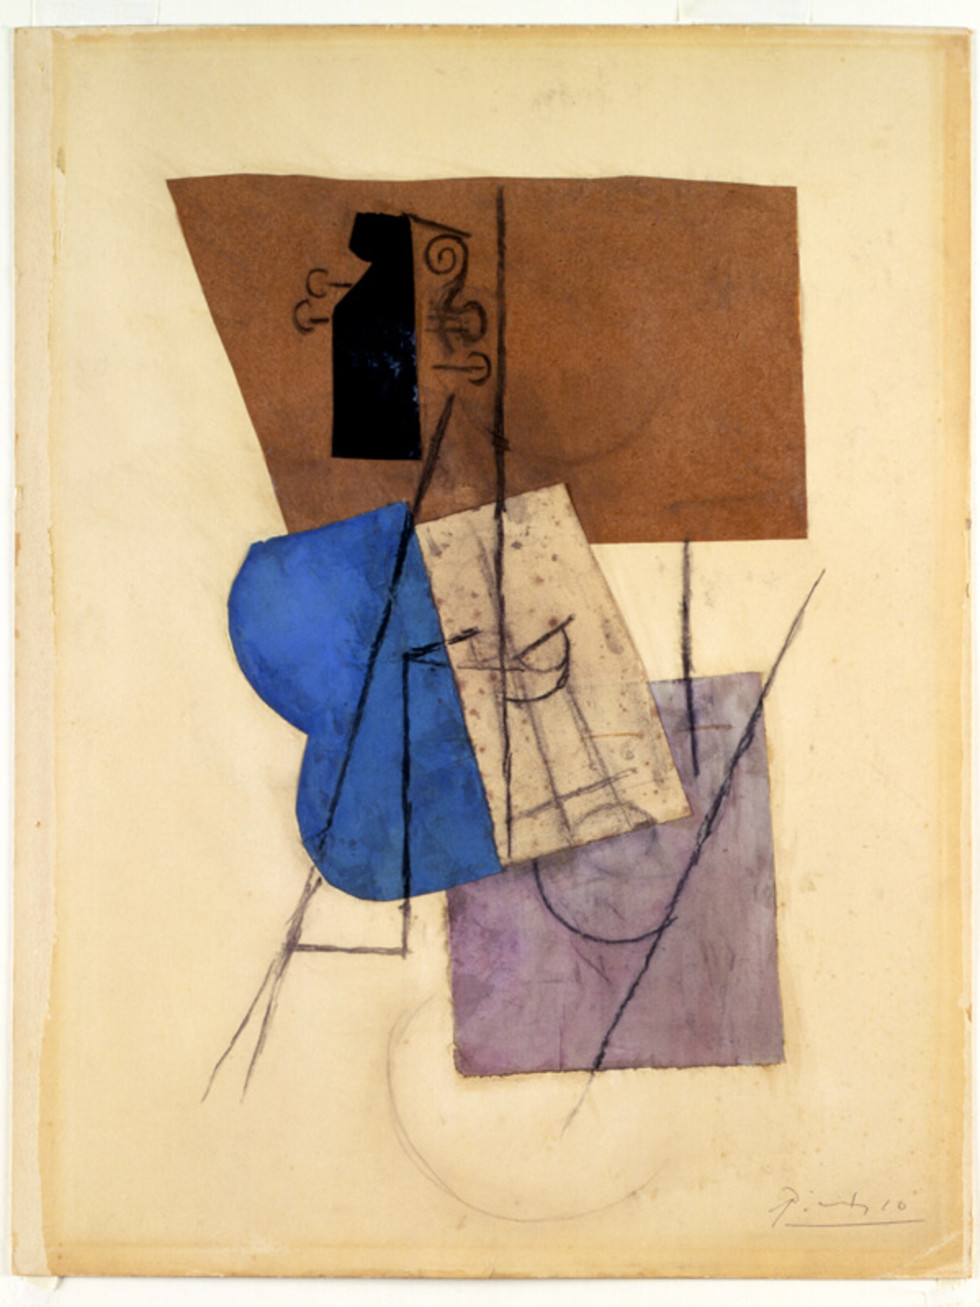 Pablo Picasso, Violin on a Table